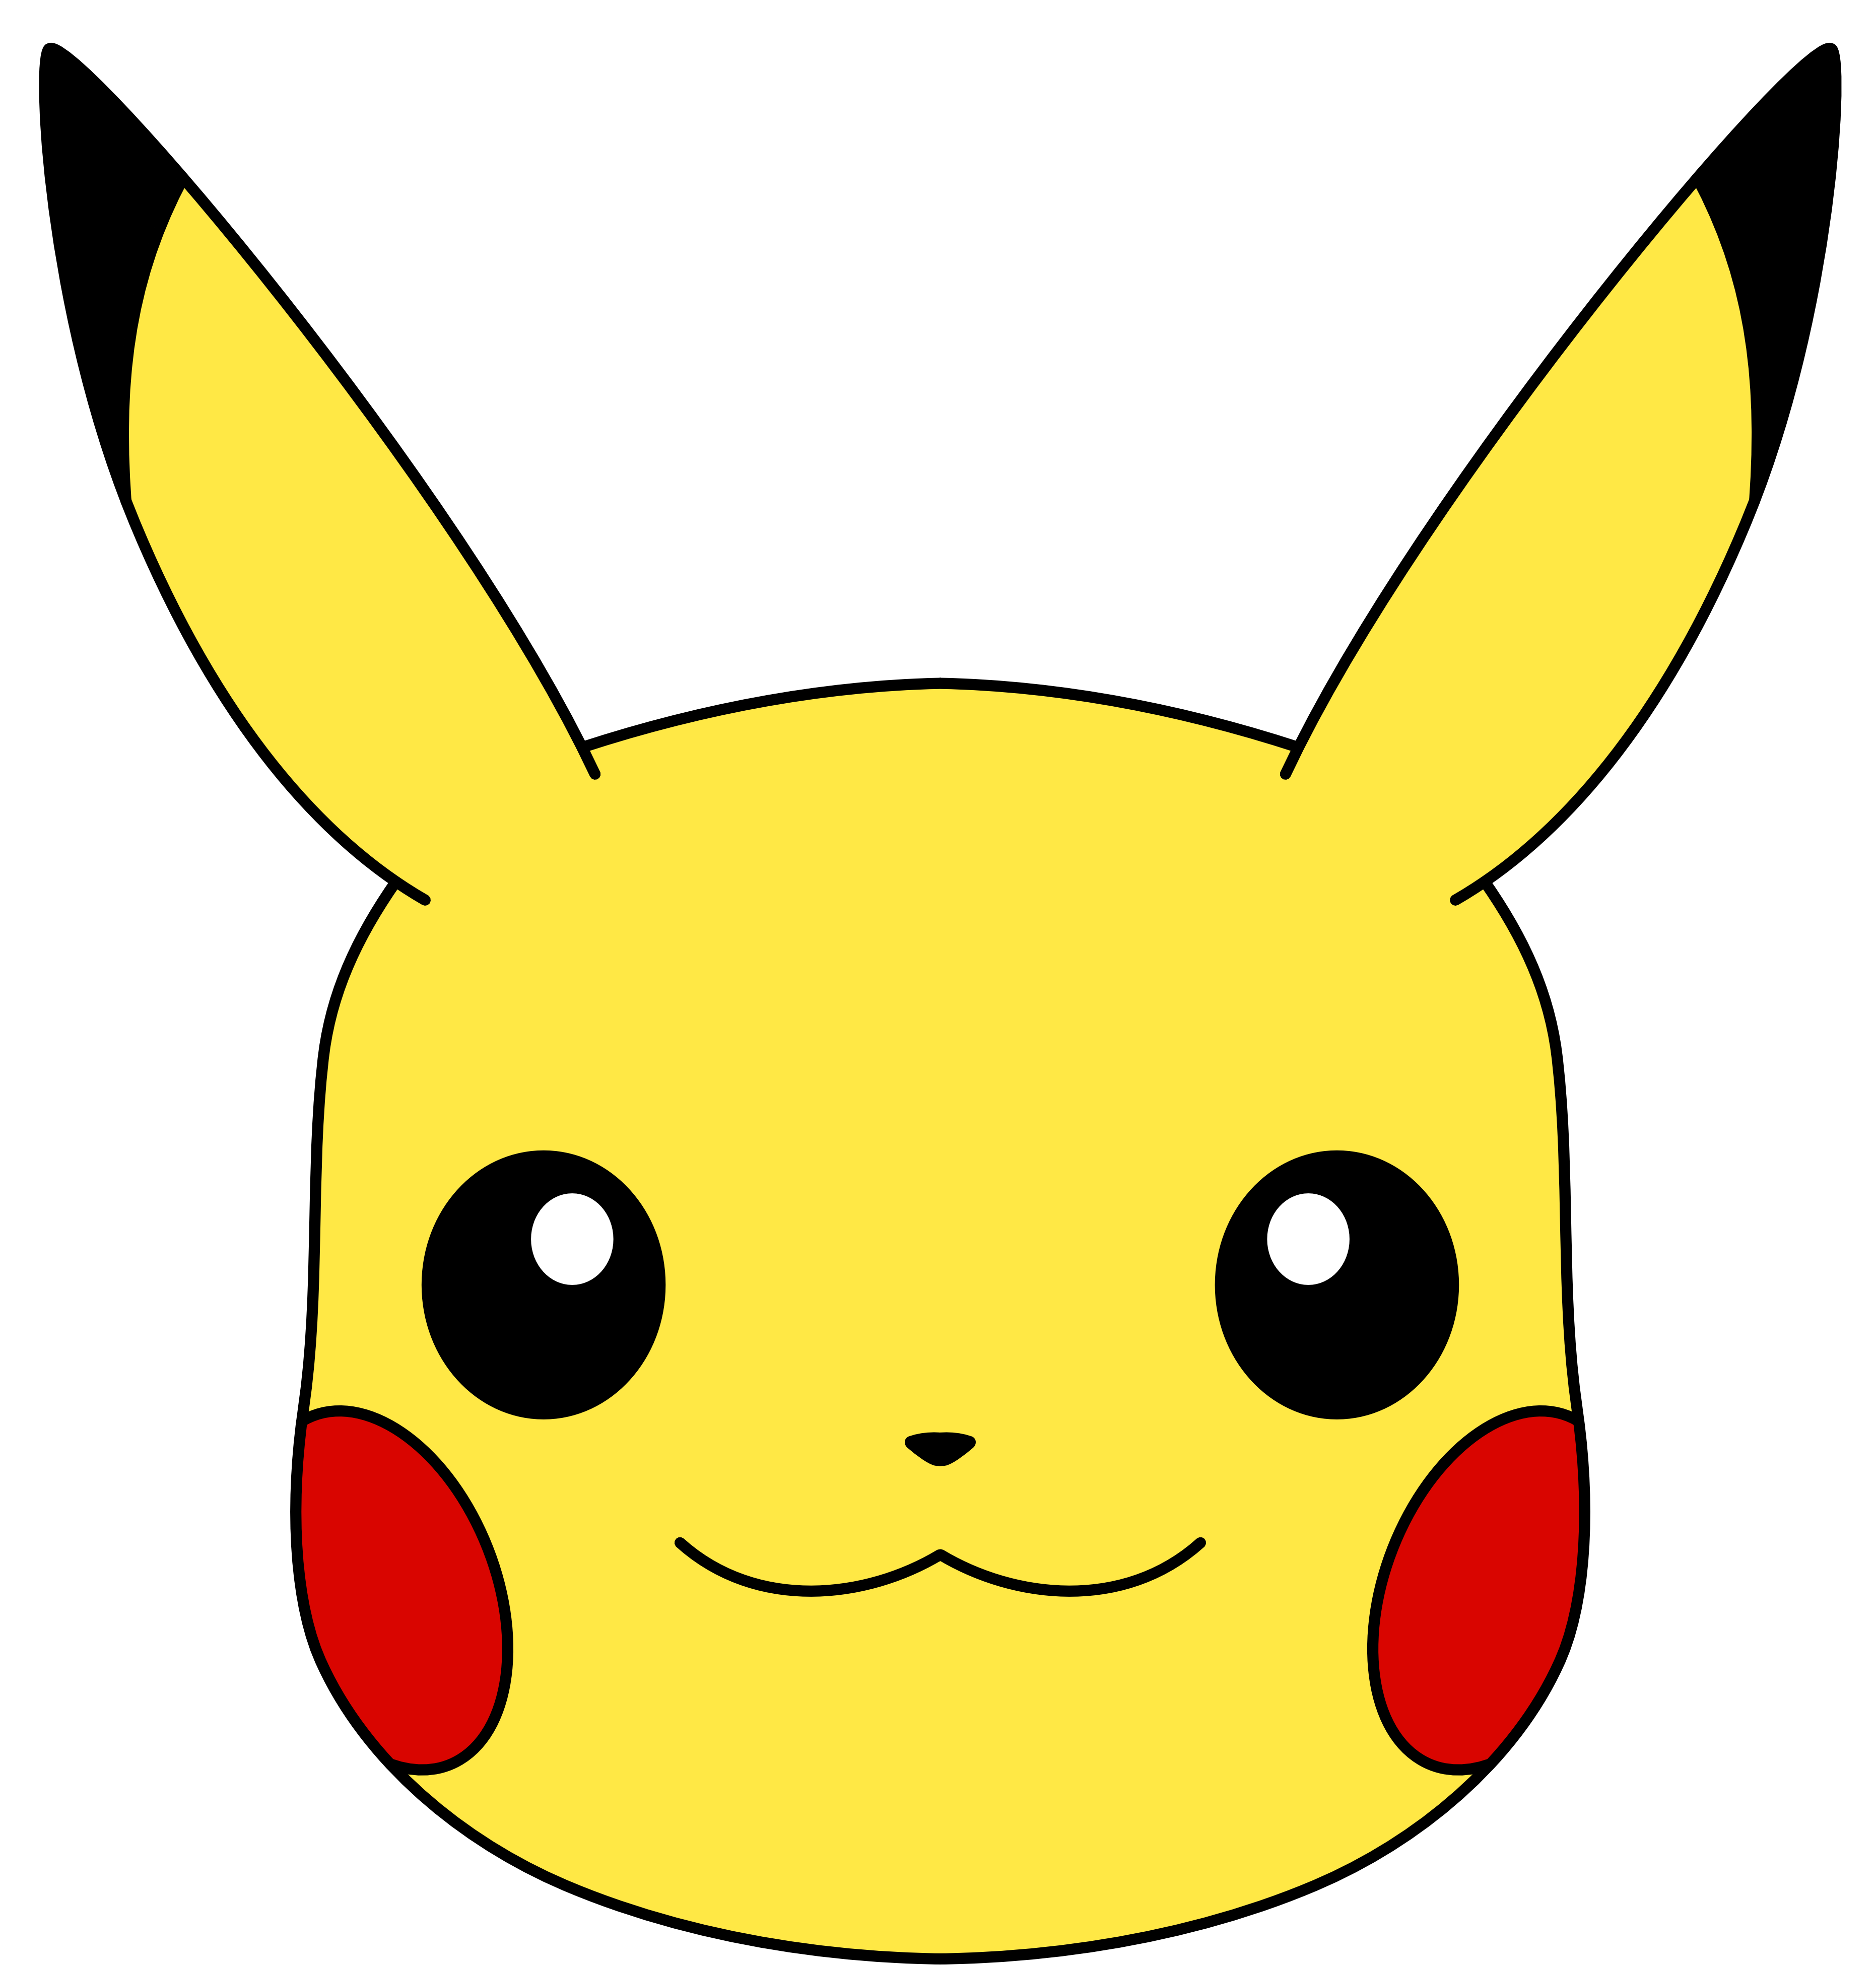 Opikachu clipart clip download Pikachu Clipart to printable to – Free Clipart Images clip download